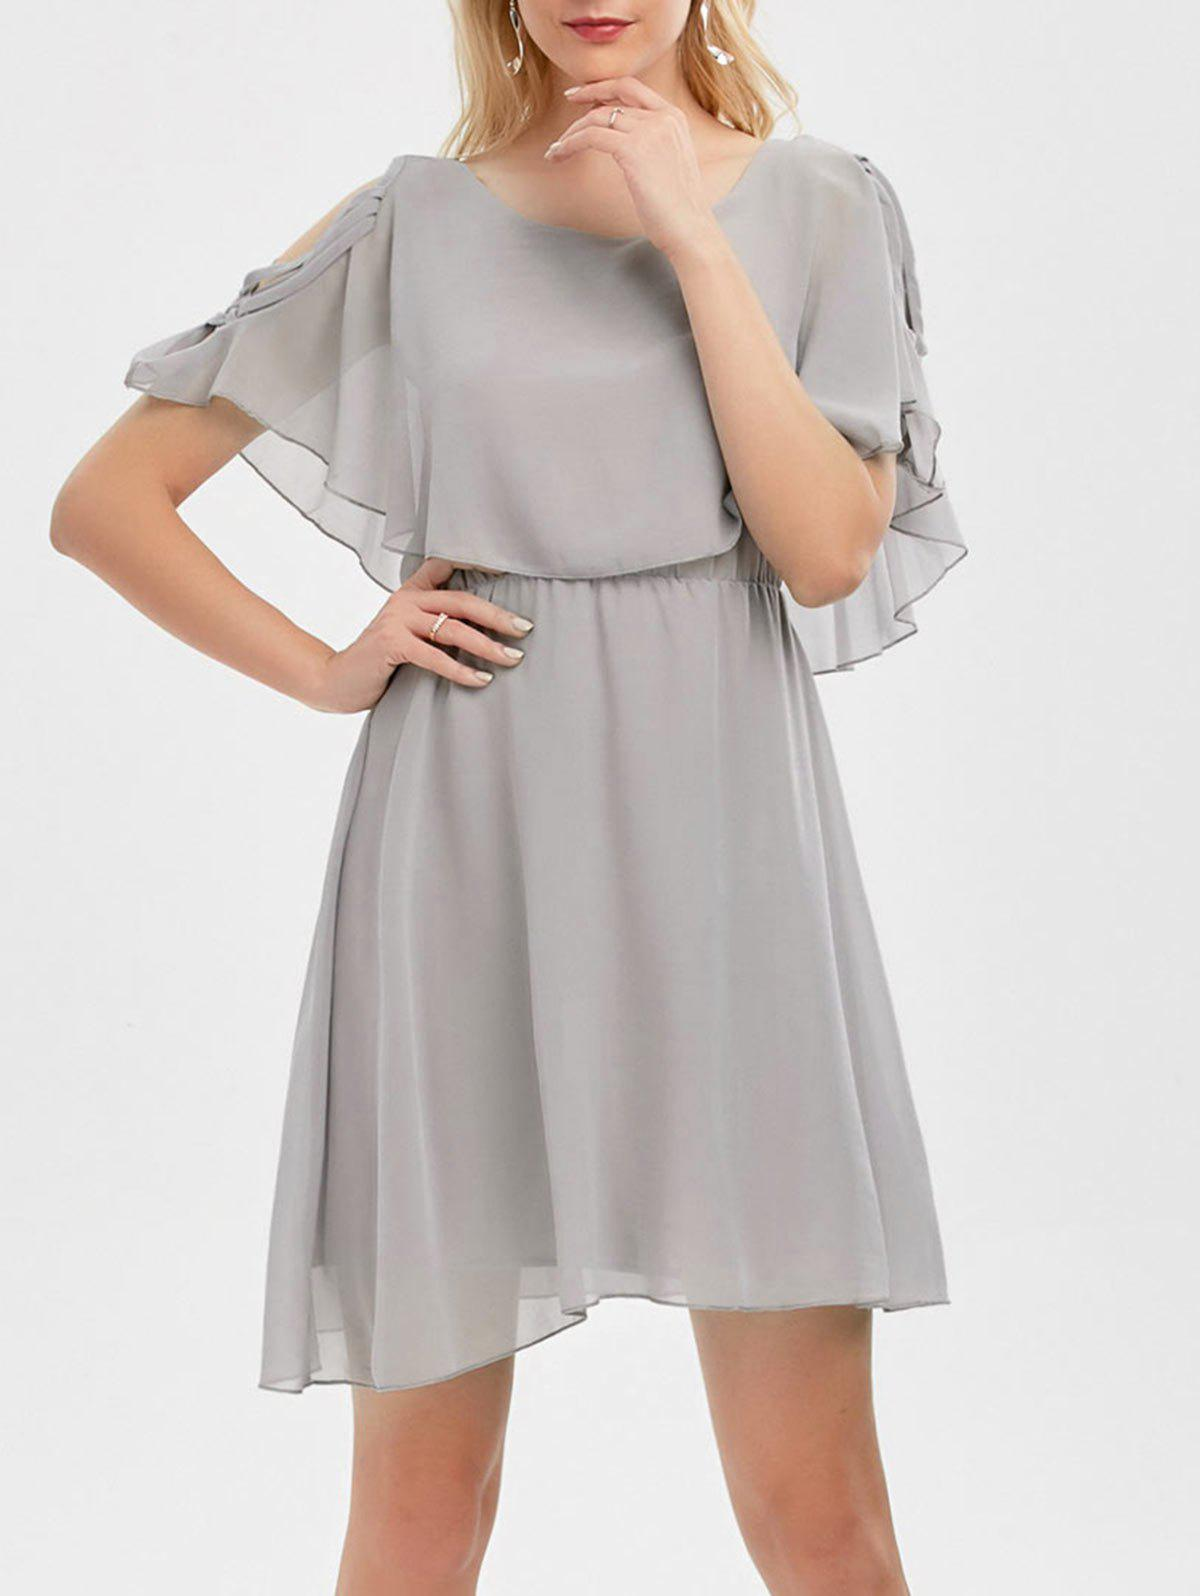 Ruffle Overlay Strappy Chiffon Cold Shoulder Dress - GRAY 2XL